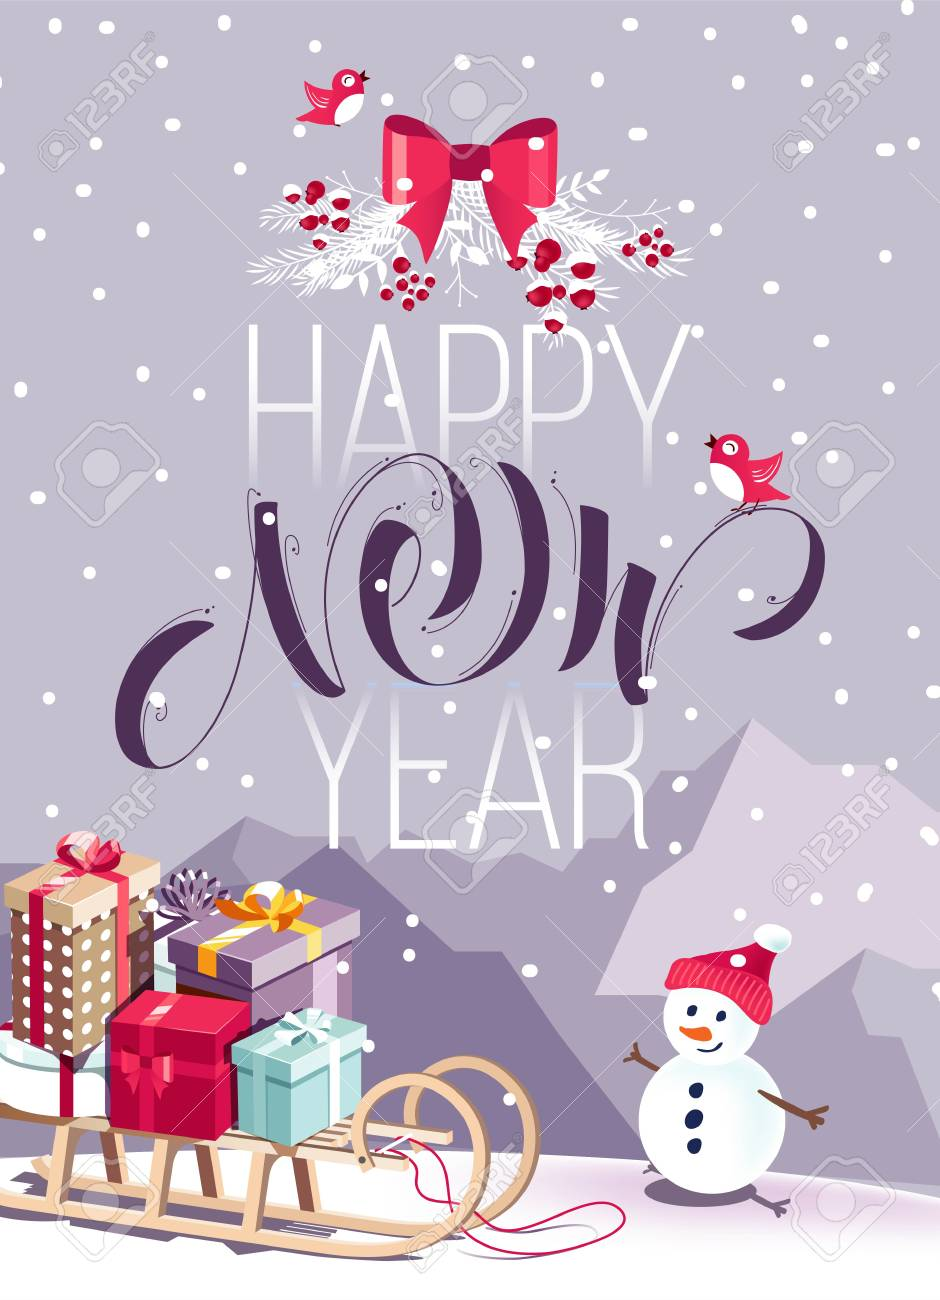 merry christmas and happy new year vector background with cute snowman santa sleigh and typographic